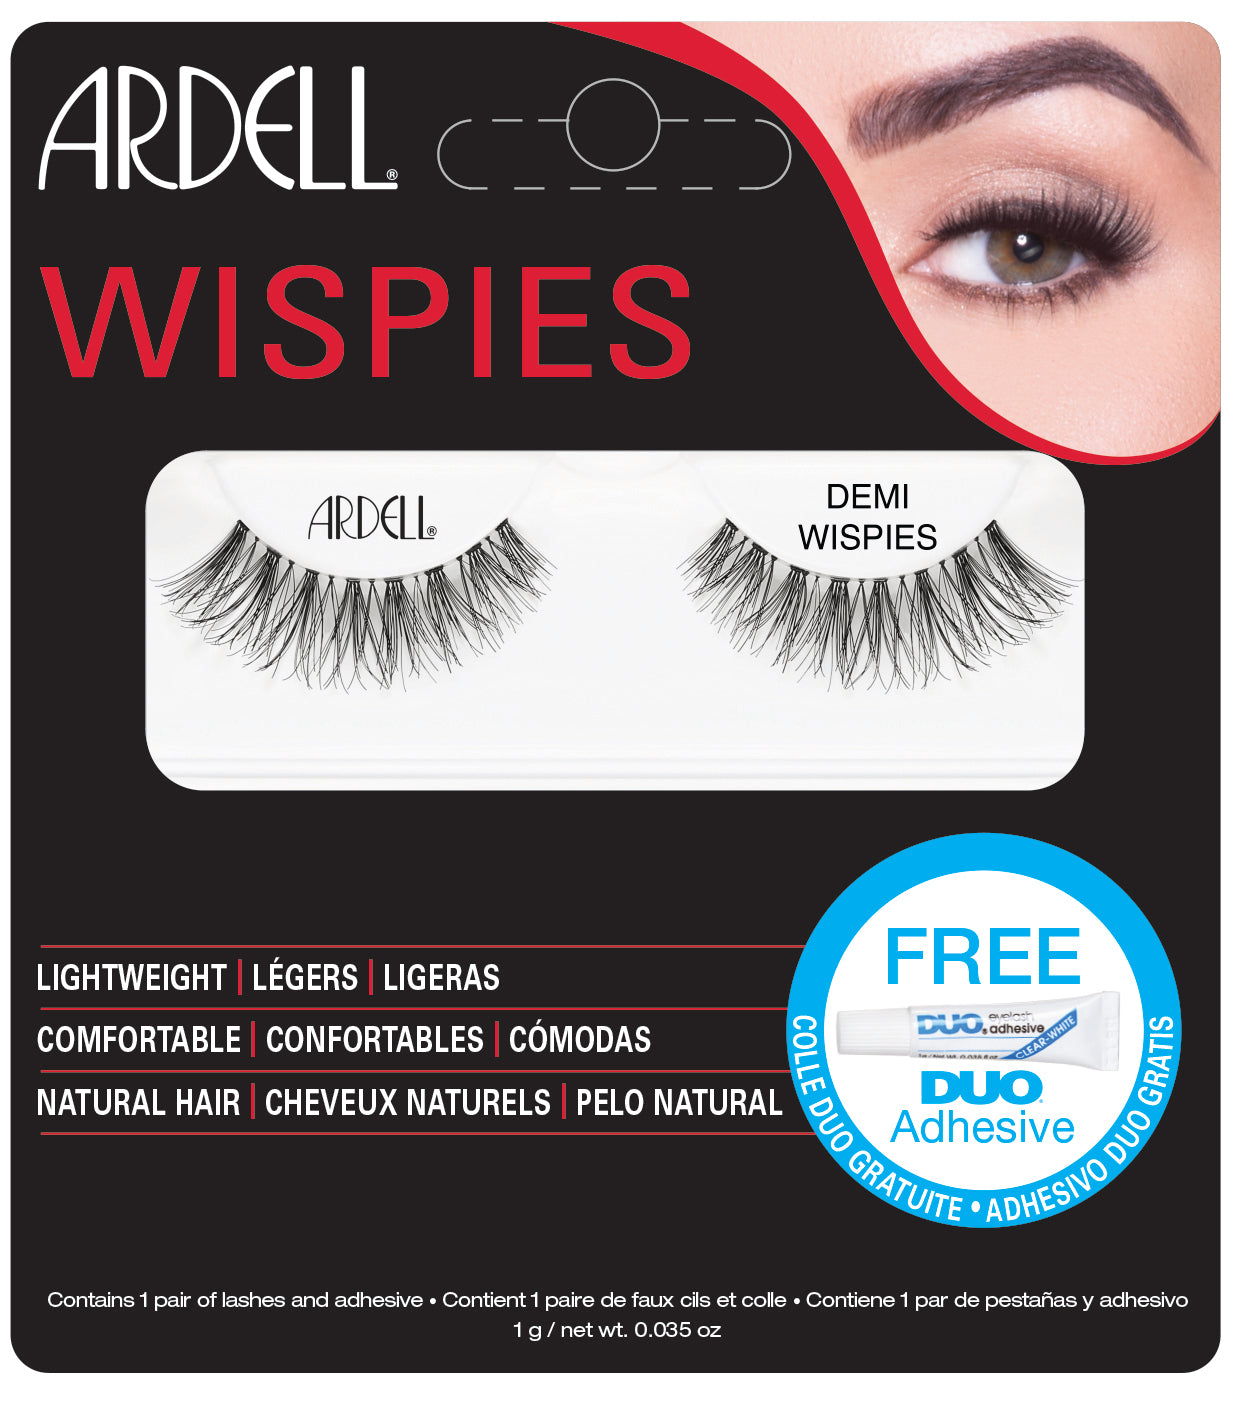 Ardell Wispies Demi Lashes Black with Free DUO Lash Adhesive (Clear) 1g